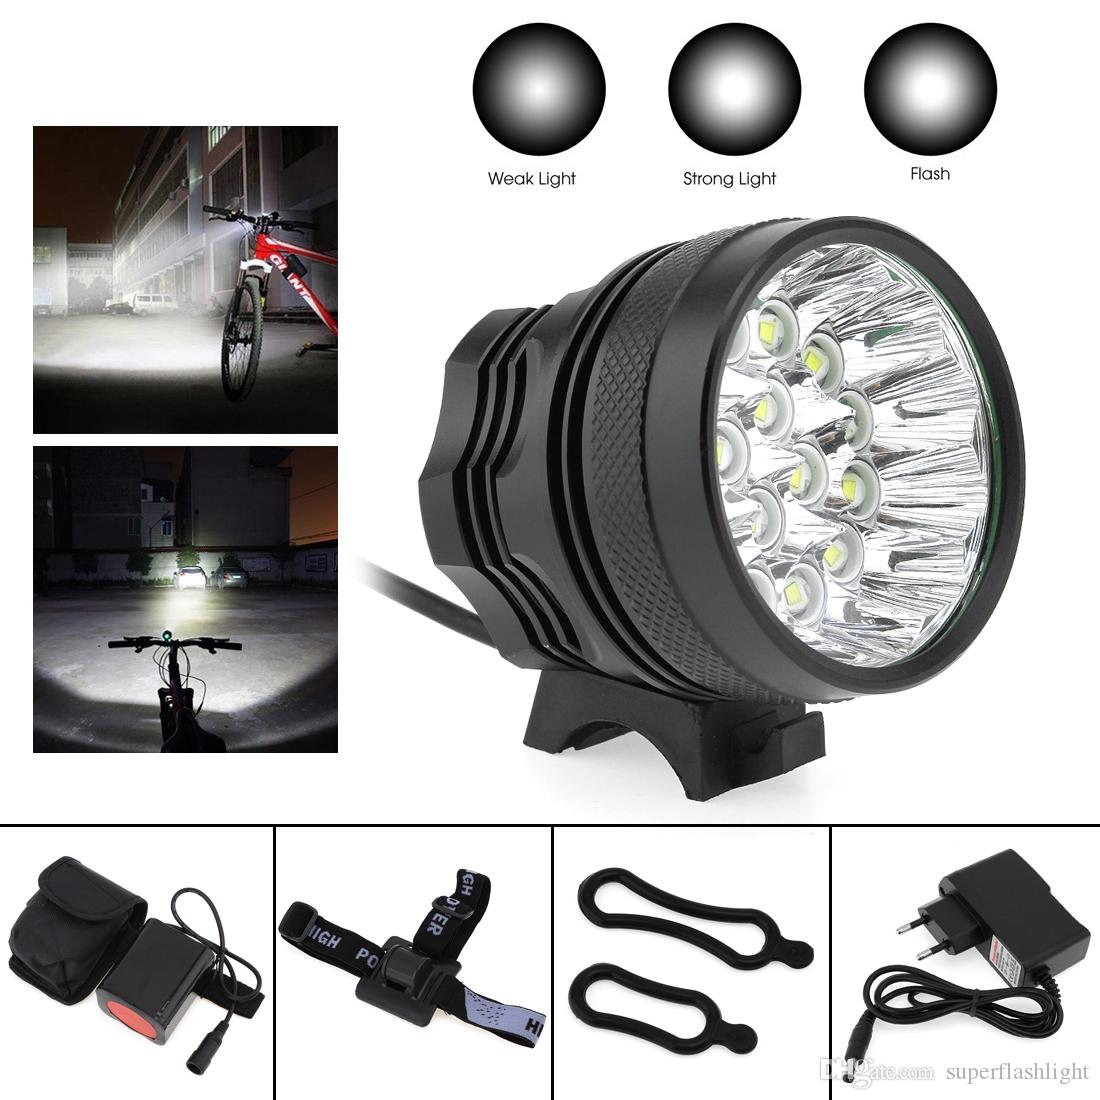 XM-L T6 LED Bicycle Lamp Bike Light Bike Handlebar Headlight Cycling Front Lamp Torch with 8.4V 6400mAh Battery Set BLL_01X